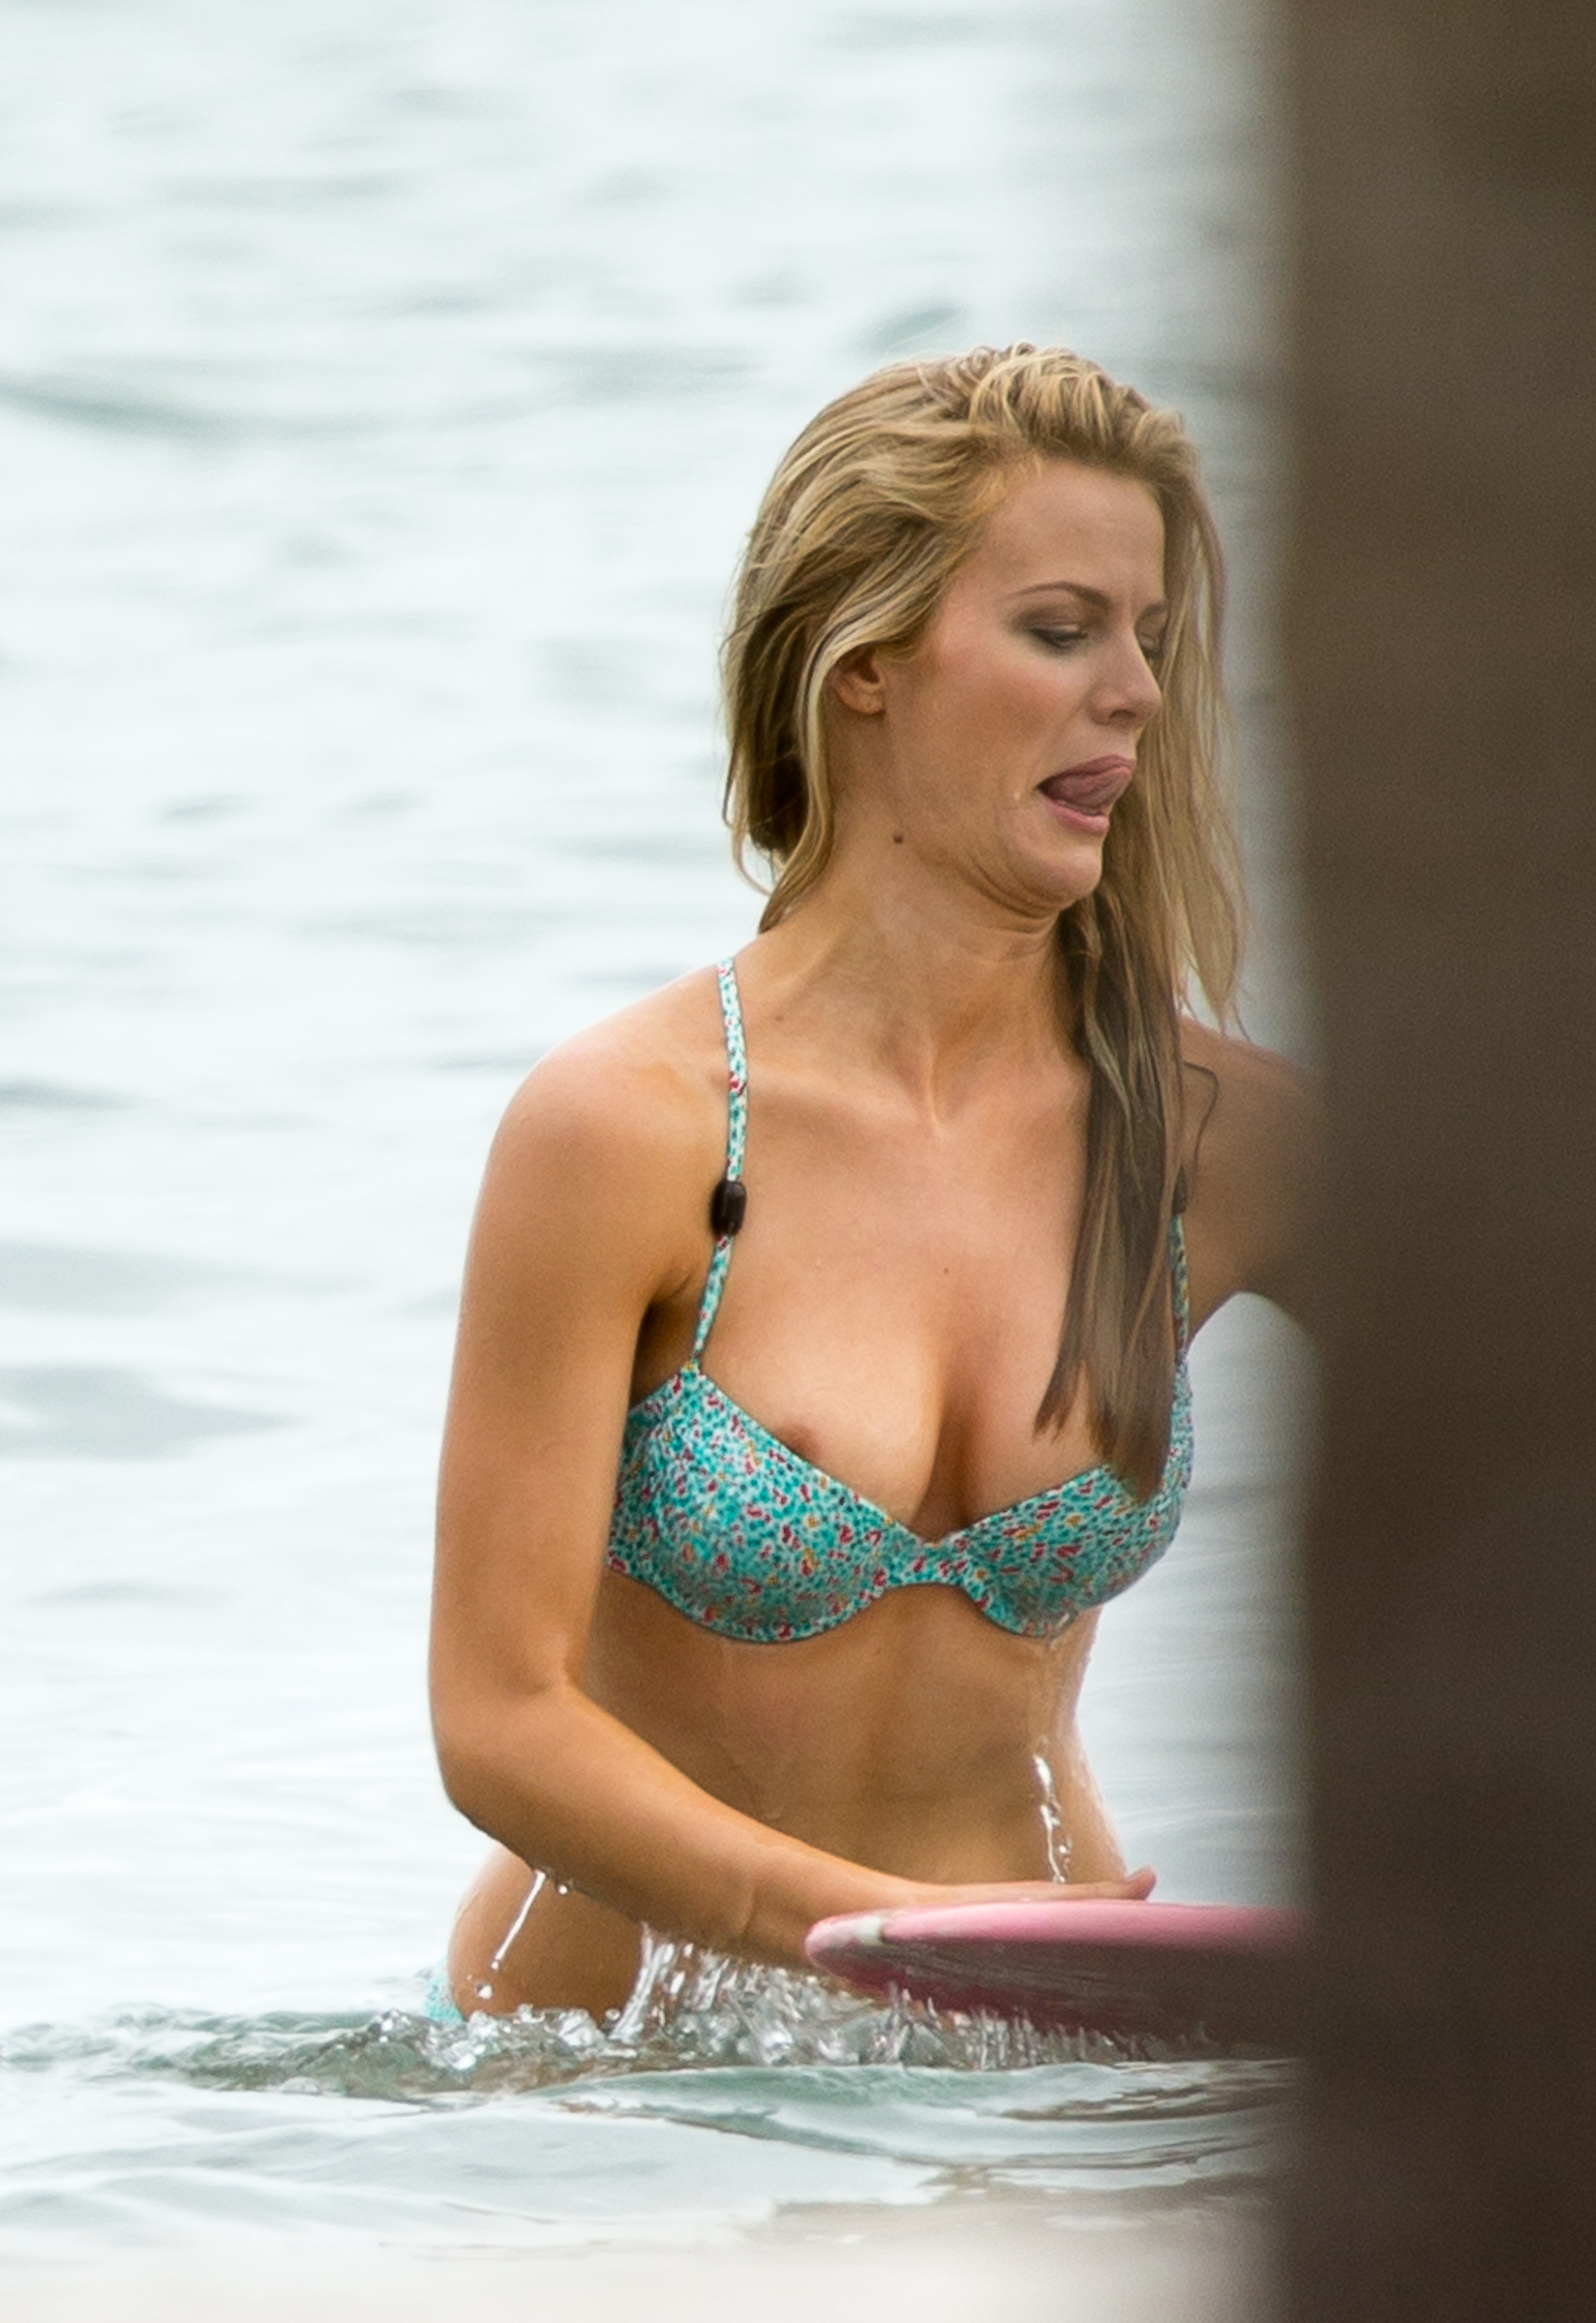 brooklyn decker nude on beach